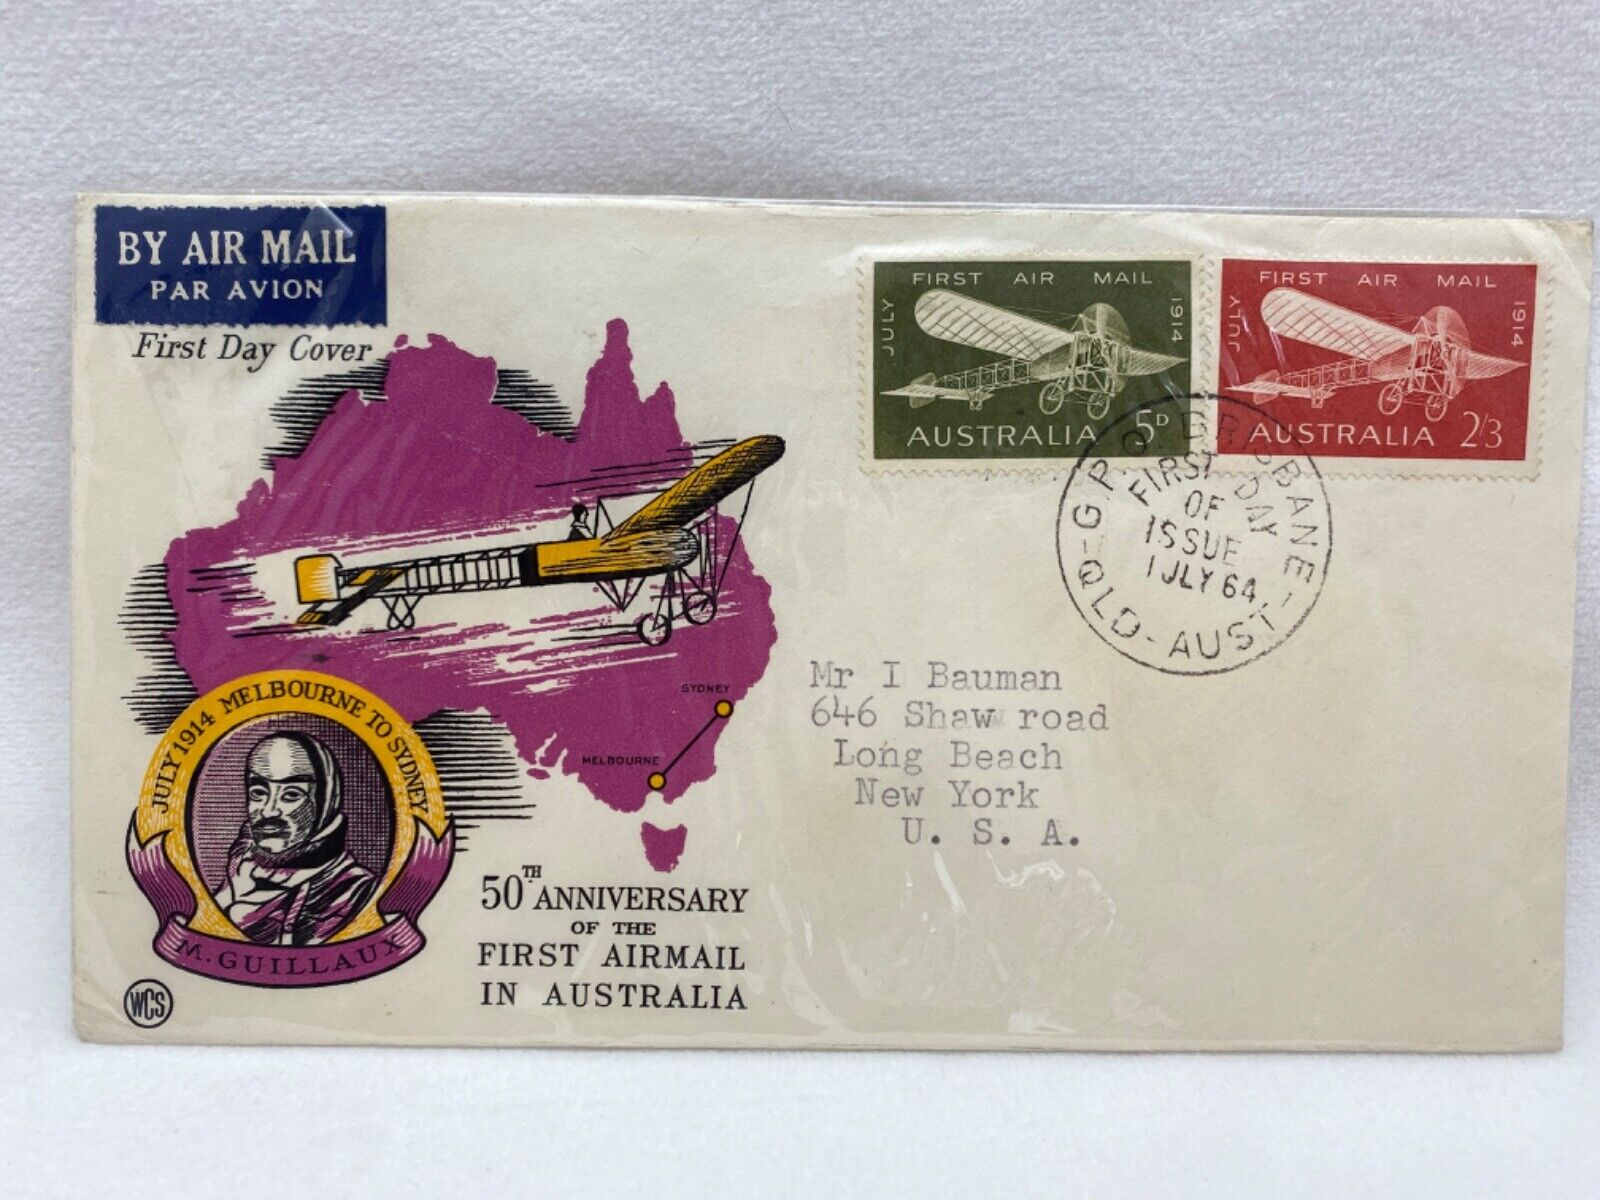 AUSTRALIA - 1964 50th ANNIVERSARY OF 1st AIR MAIL IN AUSTRALIA SPECIAL COVER 16 - $1.25